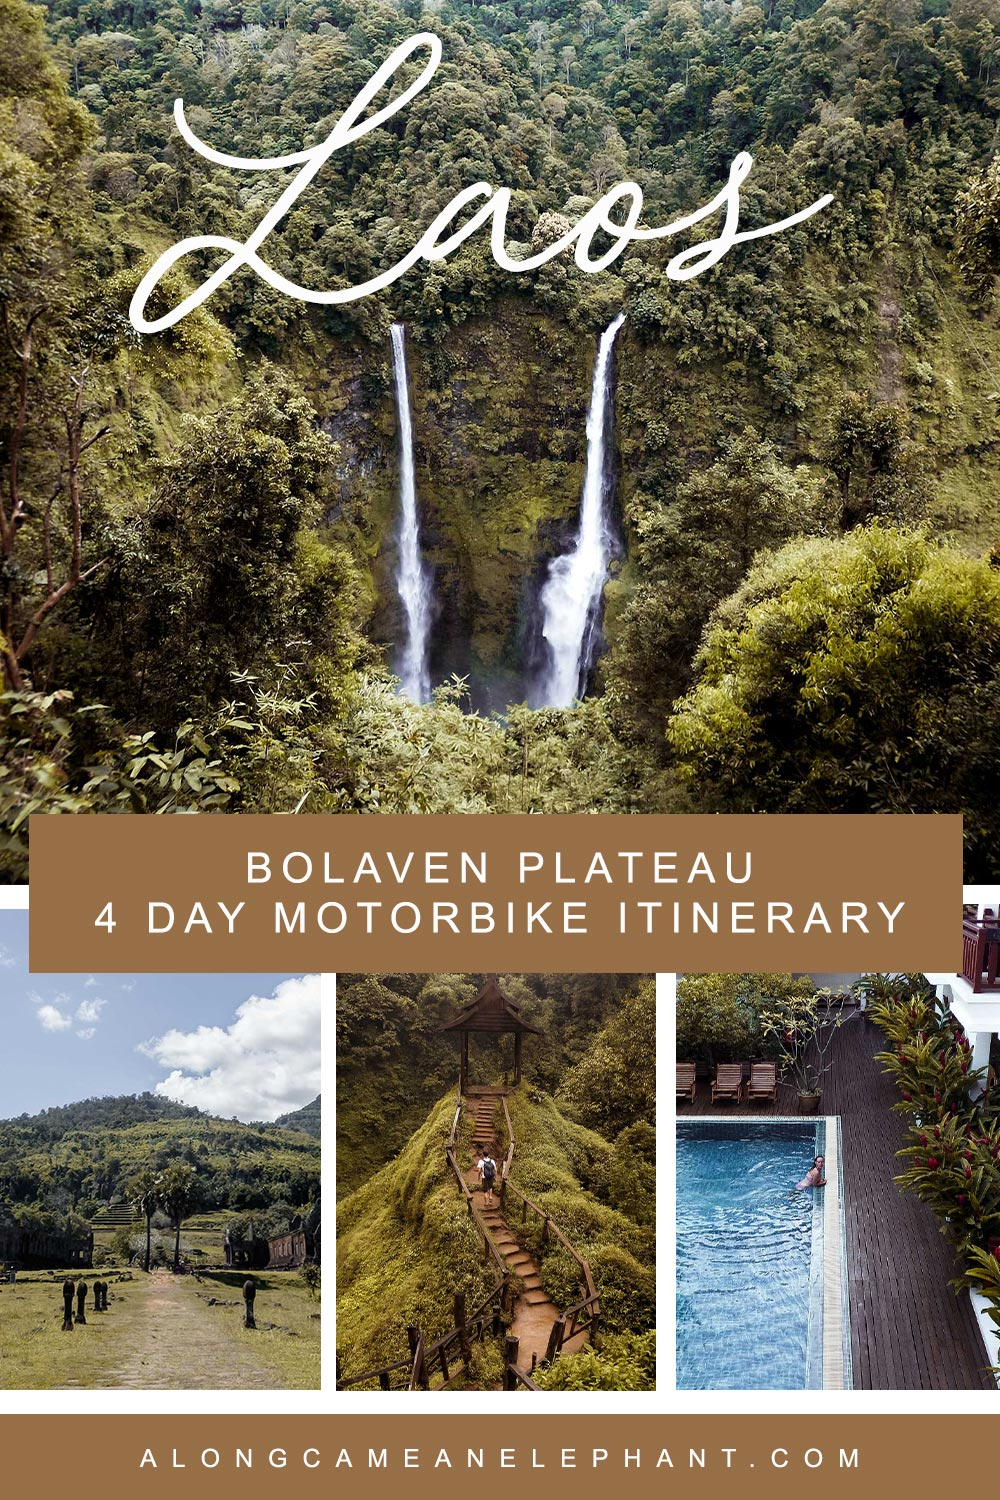 Ready to discover hidden Laos? The south of Laos hold gorgeous waterfalls, tropical rainforests, UNESCO heritage temples and coffee fields. All this can be found on the Bolaven Plateau. Discover our 4 days Bolaven Plateau motorbike loop itinerary with the best stops en route!  #travelasia #laos #bolavenplateau #laostravel